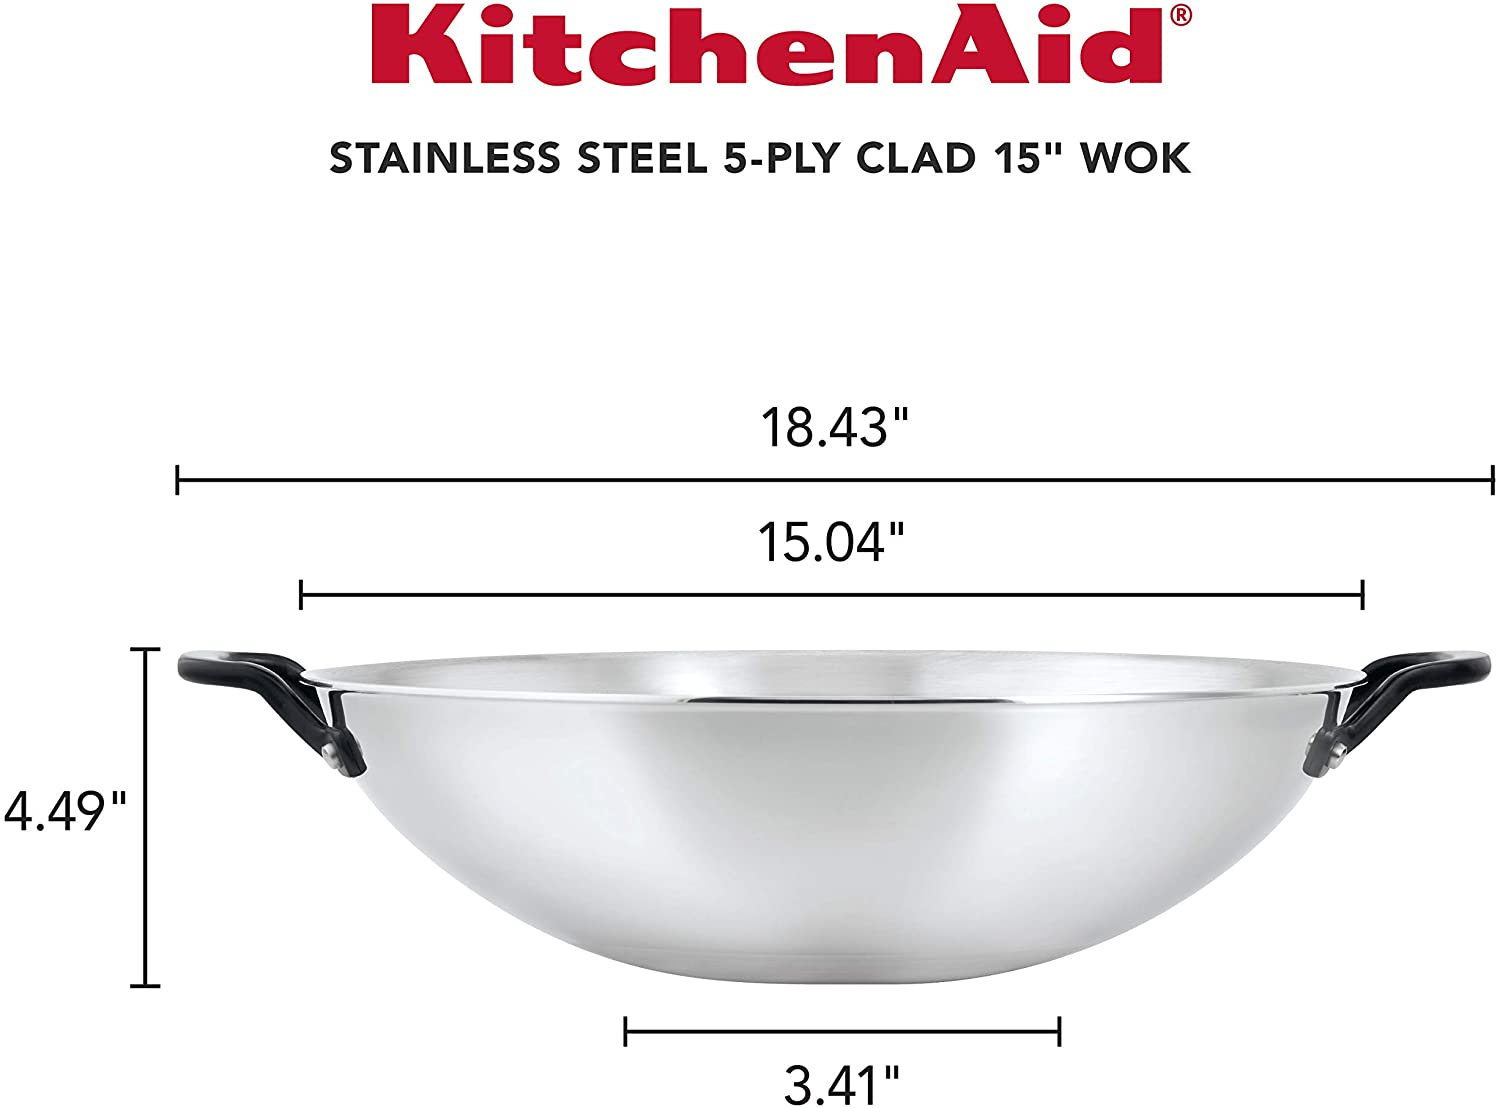 Review of KitchenAid 5-Ply Clad Polished Stainless Steel Stir Fry/Wok, 15 Inch